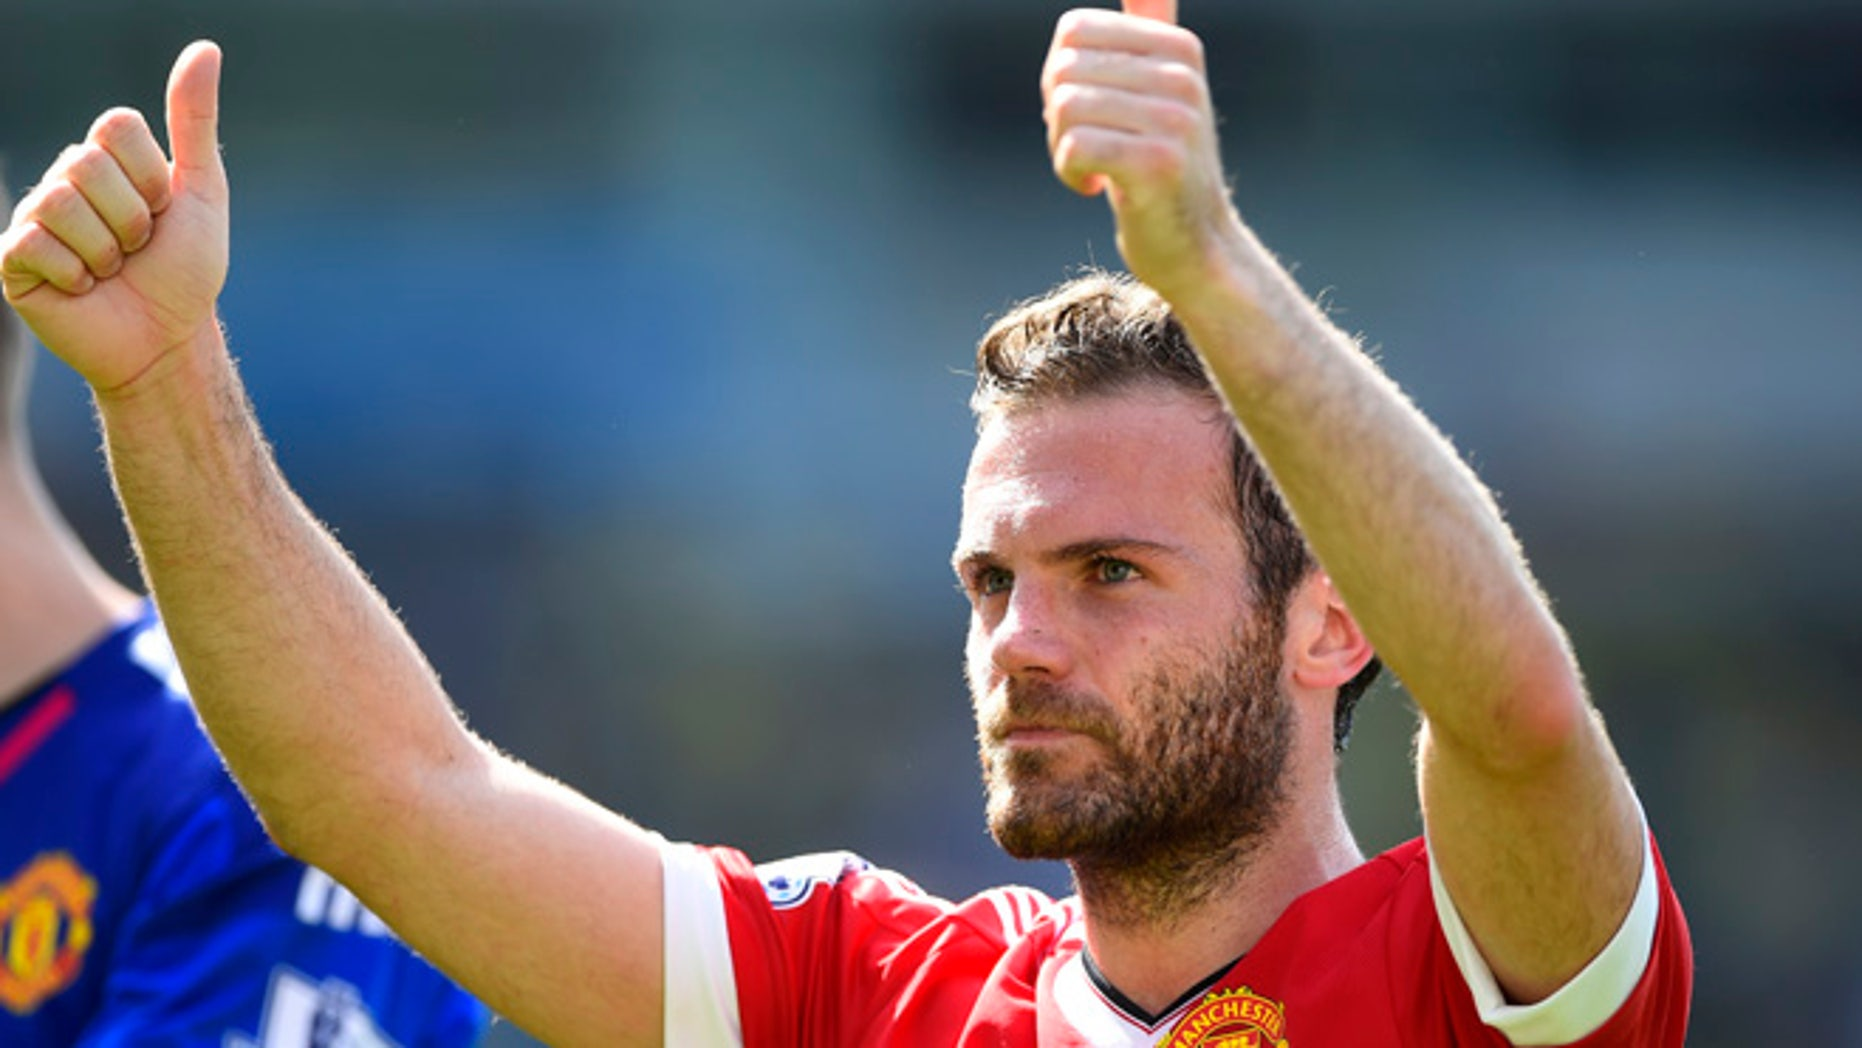 NORWICH, ENGLAND - MAY 07:  Juan Mata of Manchester United celebrates his team's 1-0 win in the Barclays Premier League match between Norwich City and Manchester United at Carrow Road on May 7, 2016 in Norwich, England.  (Photo by Mike Hewitt/Getty Images)